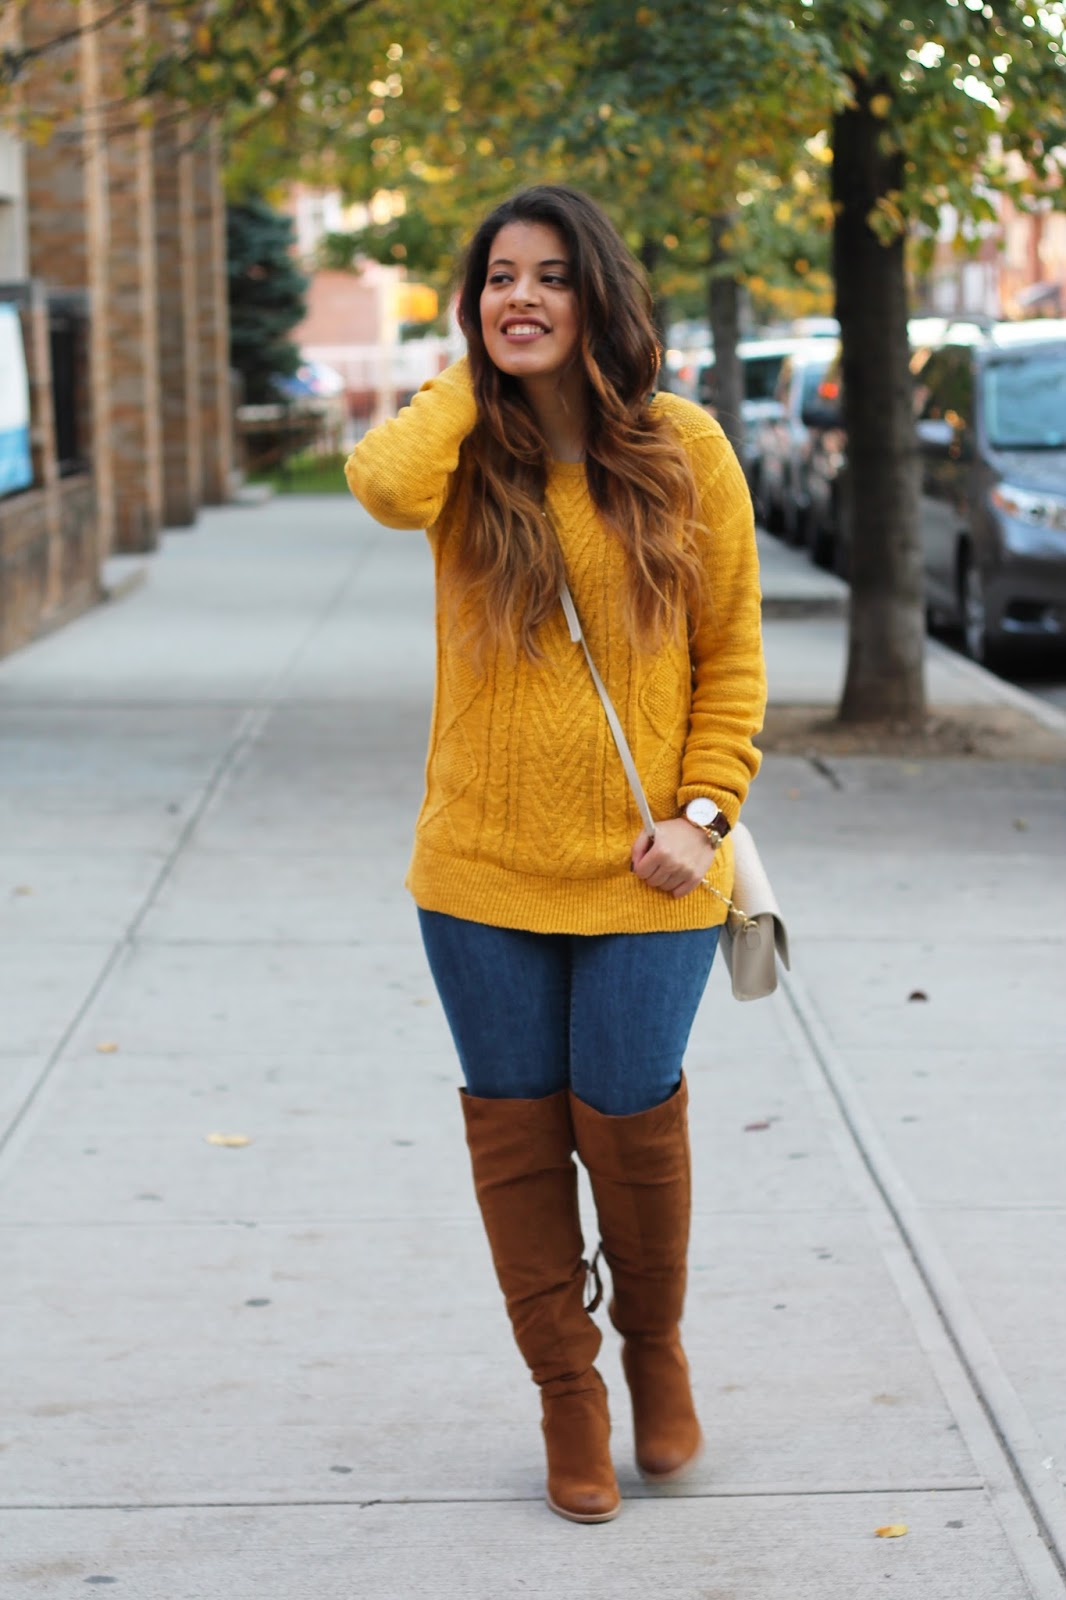 Mustard Yellow Pullover Sweater and Brown Over the Knee Boots.